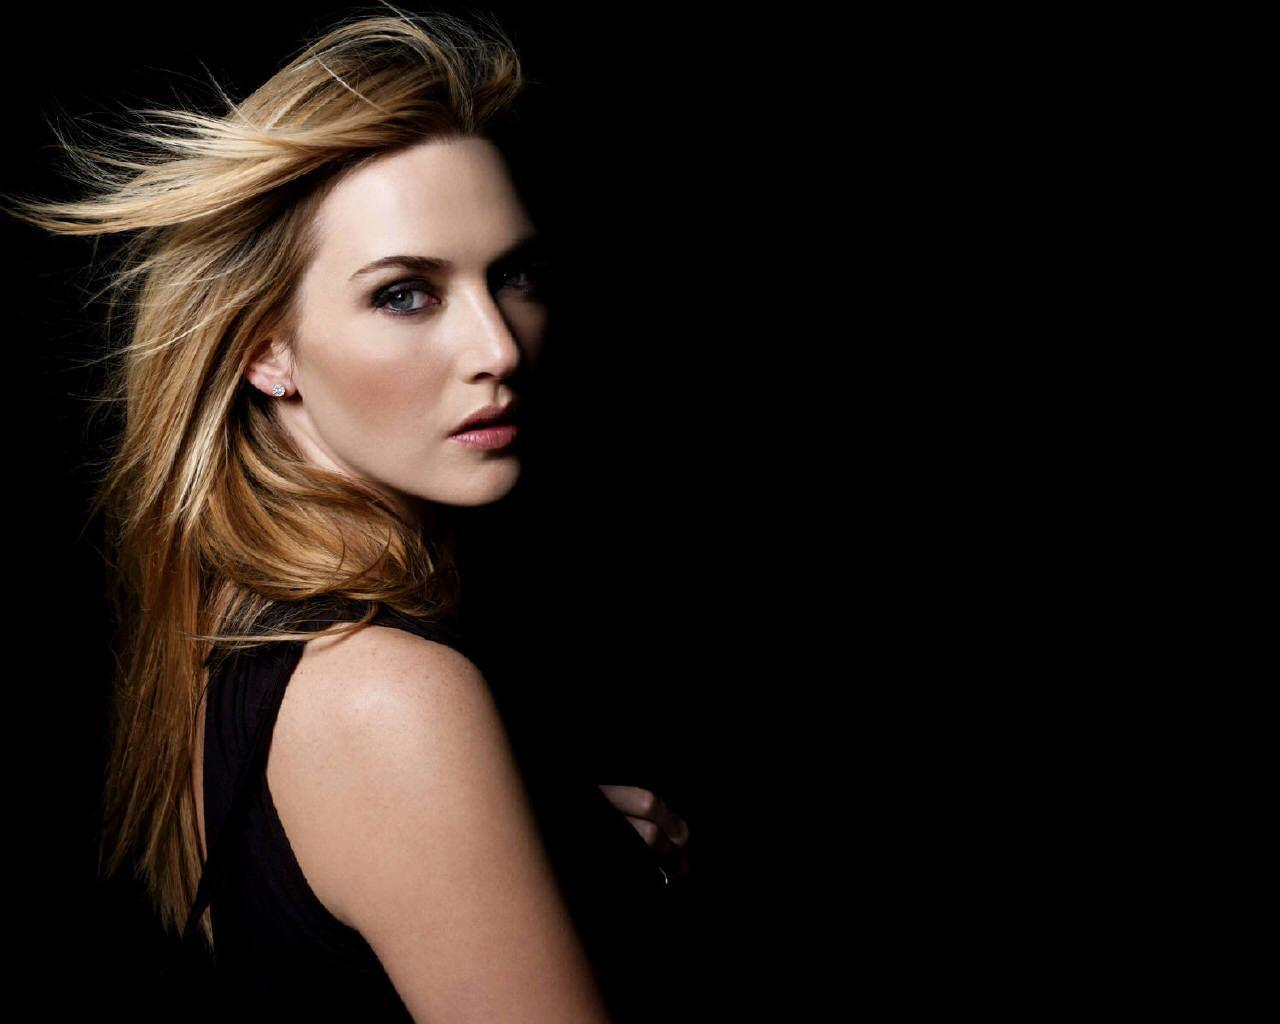 Kate Winslet images Kate HD wallpaper and background photos ...